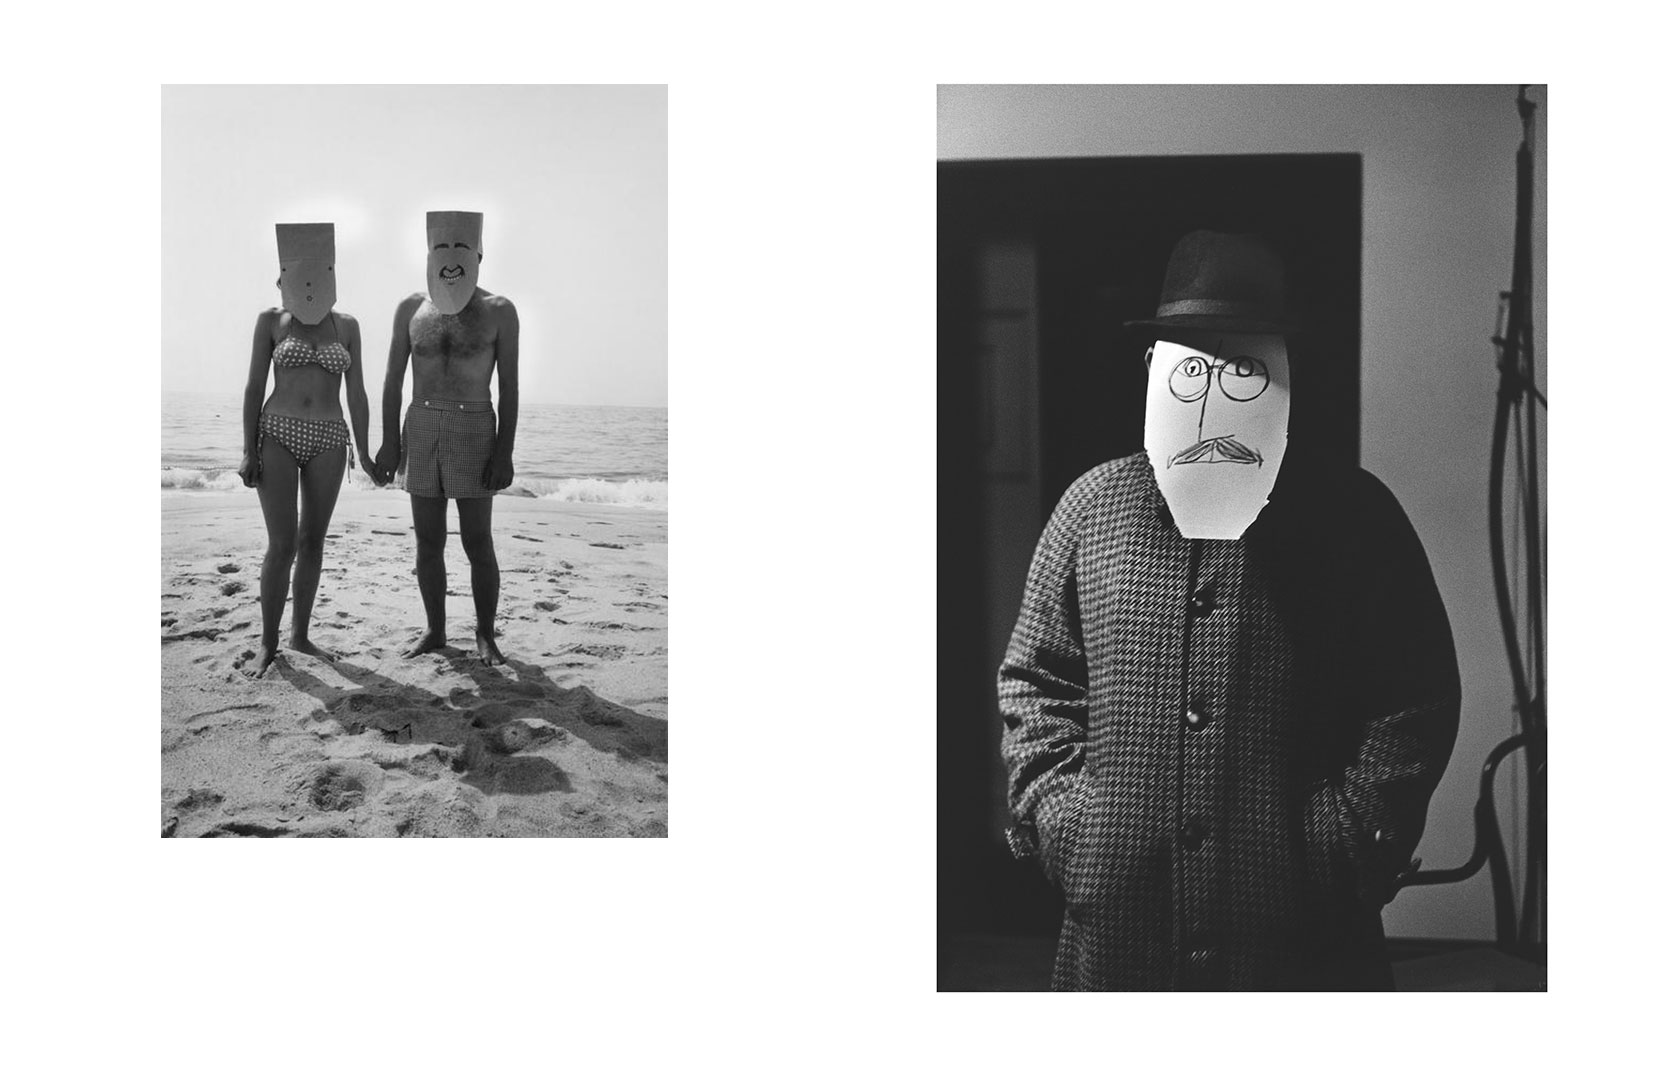 saul-steinberg-masques-index-grafik-03